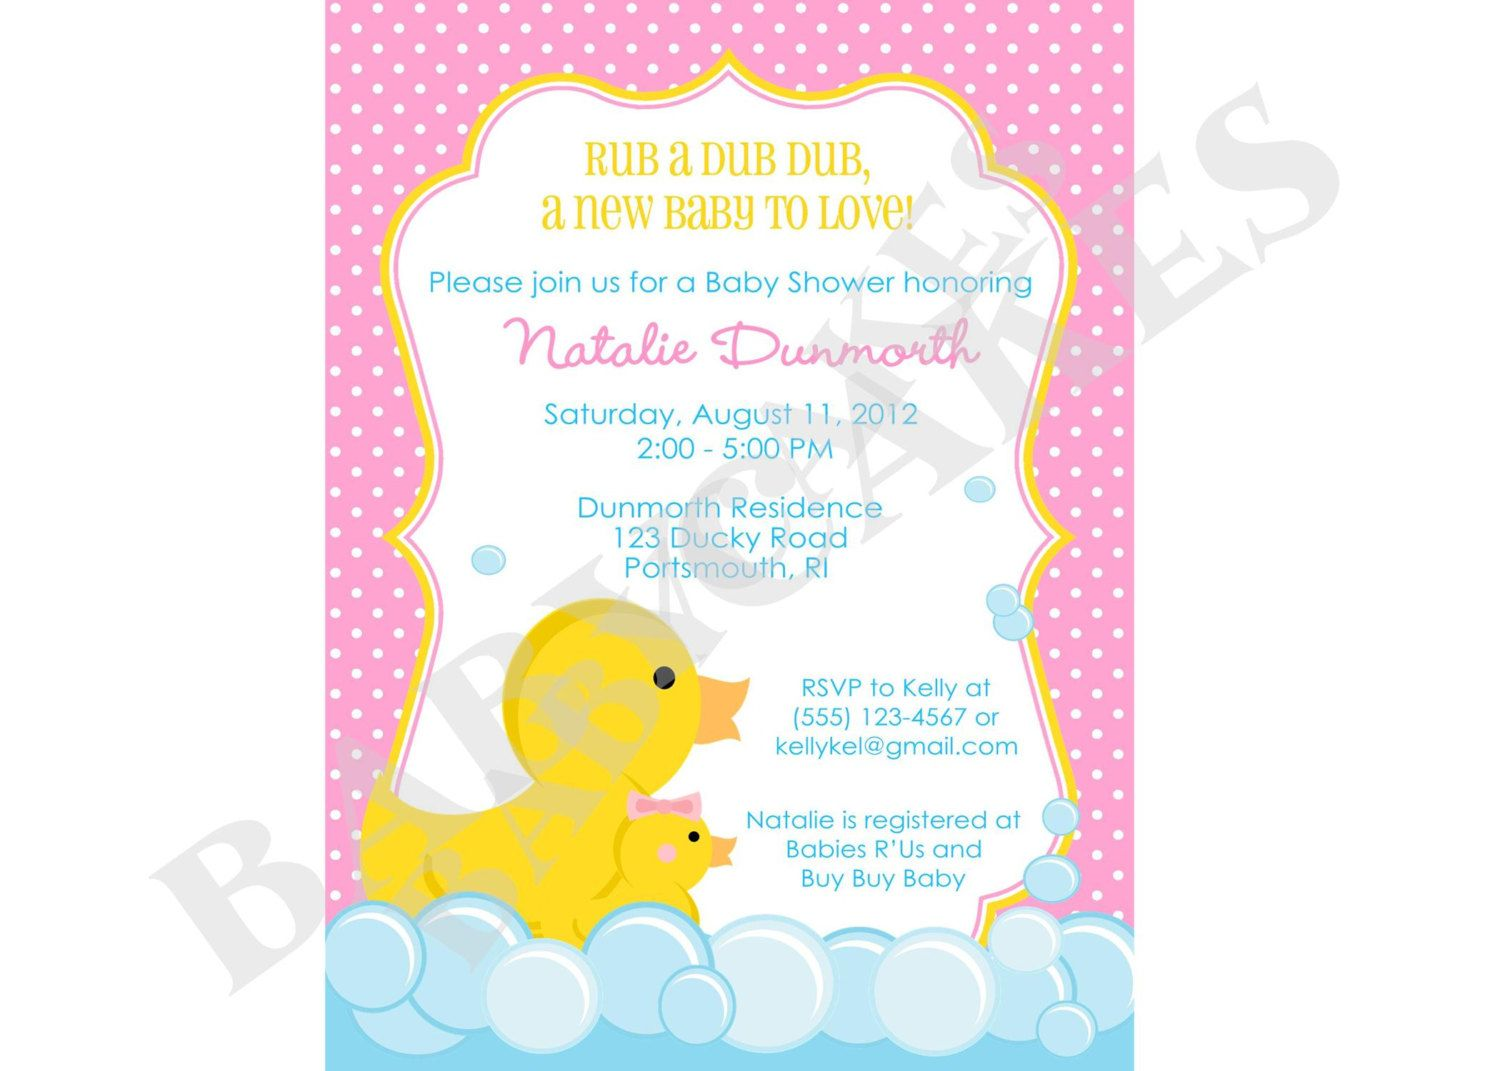 Rubber Ducky Baby Shower Invitation rubber duckie girl baby sprinkle ...